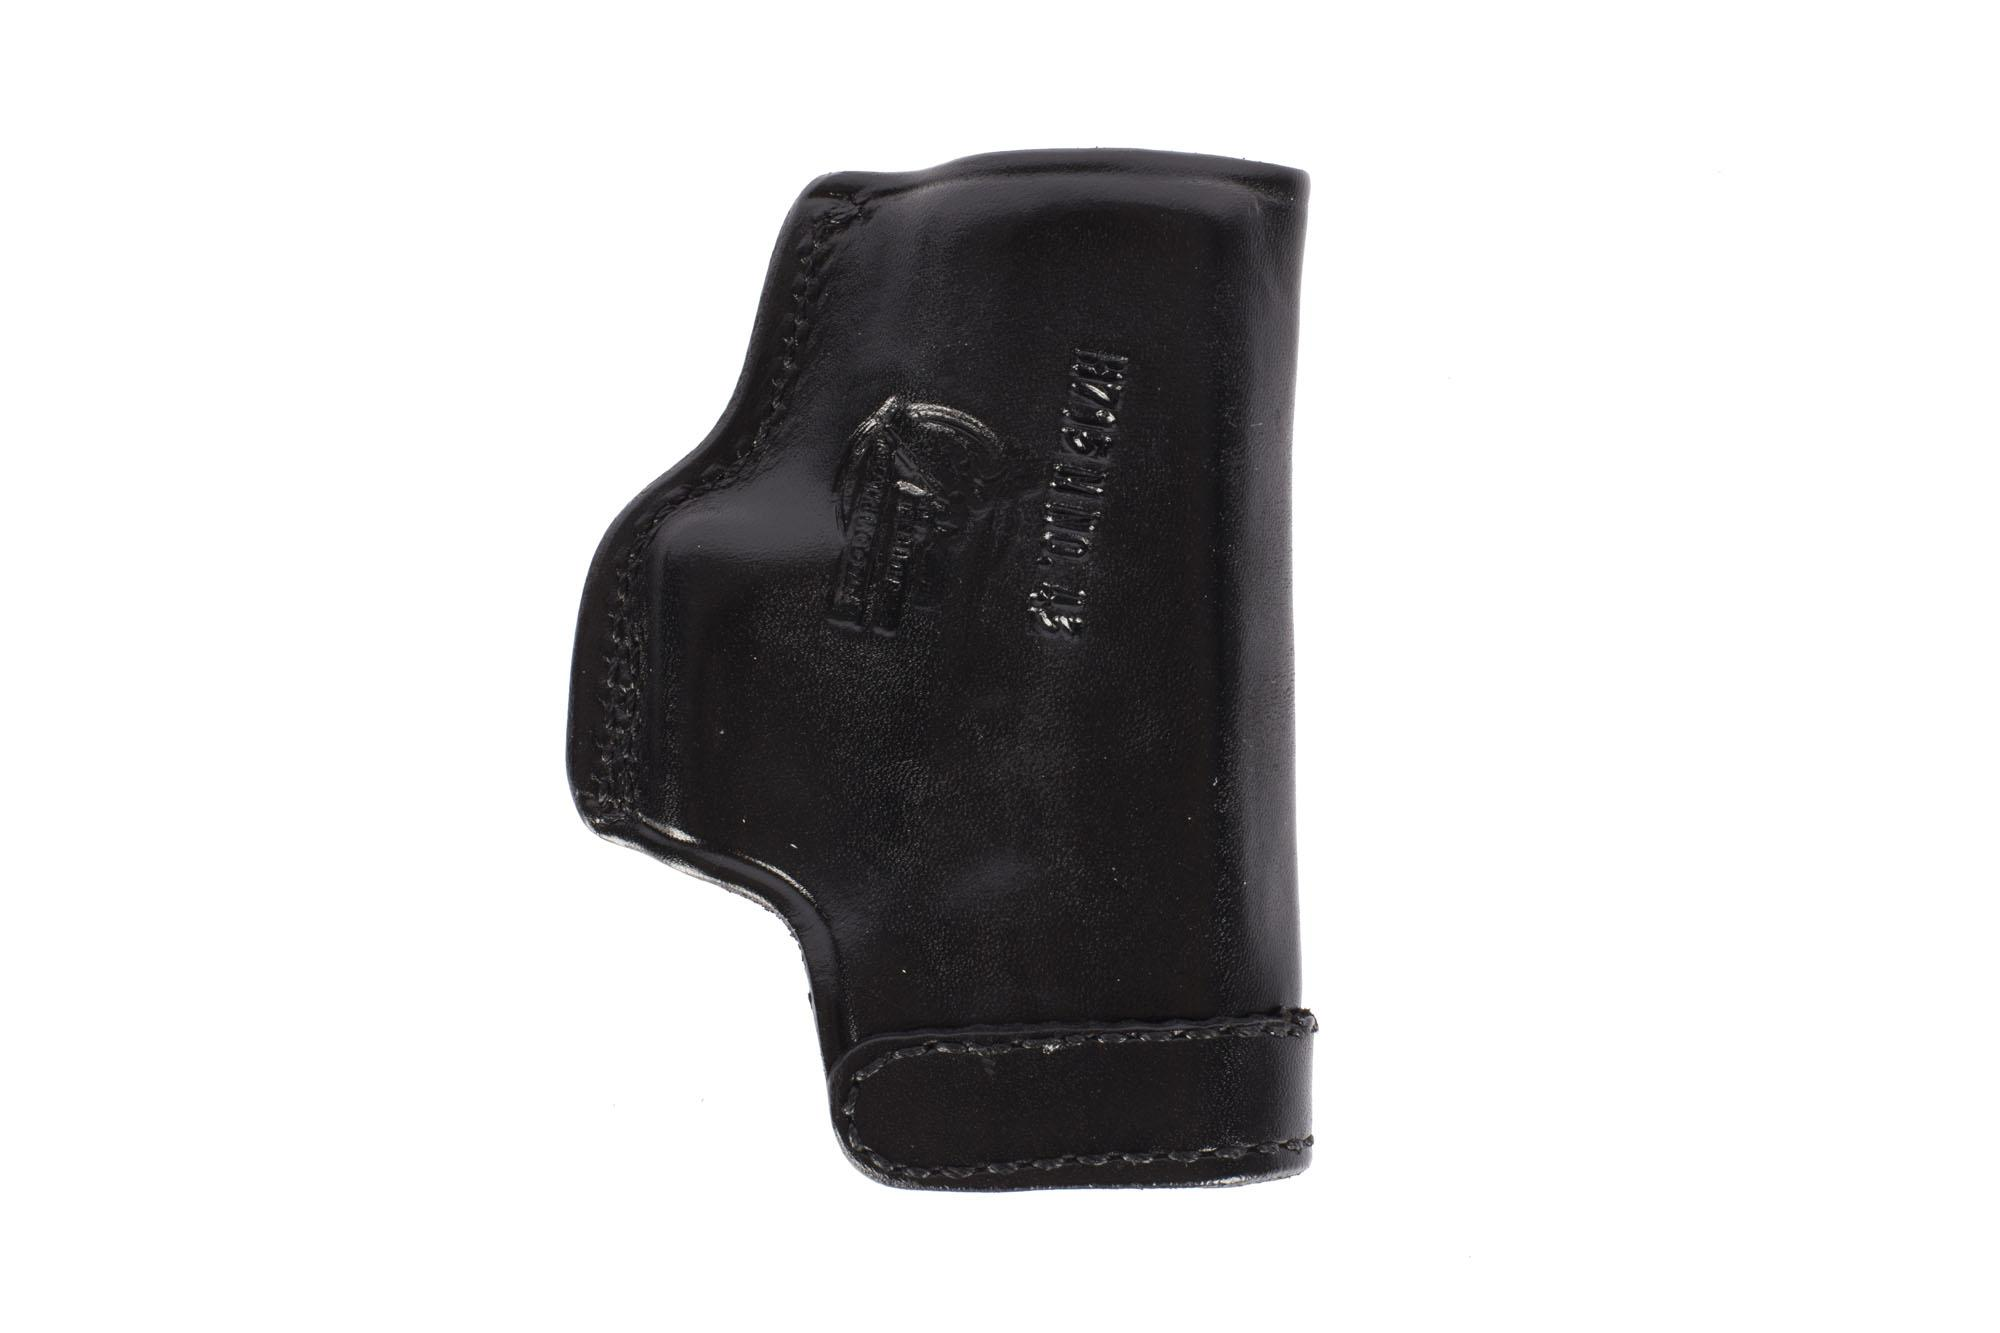 Don Hume H715-M Clip-On Holster - GLOCK 43 - Right Hand - Black Leather